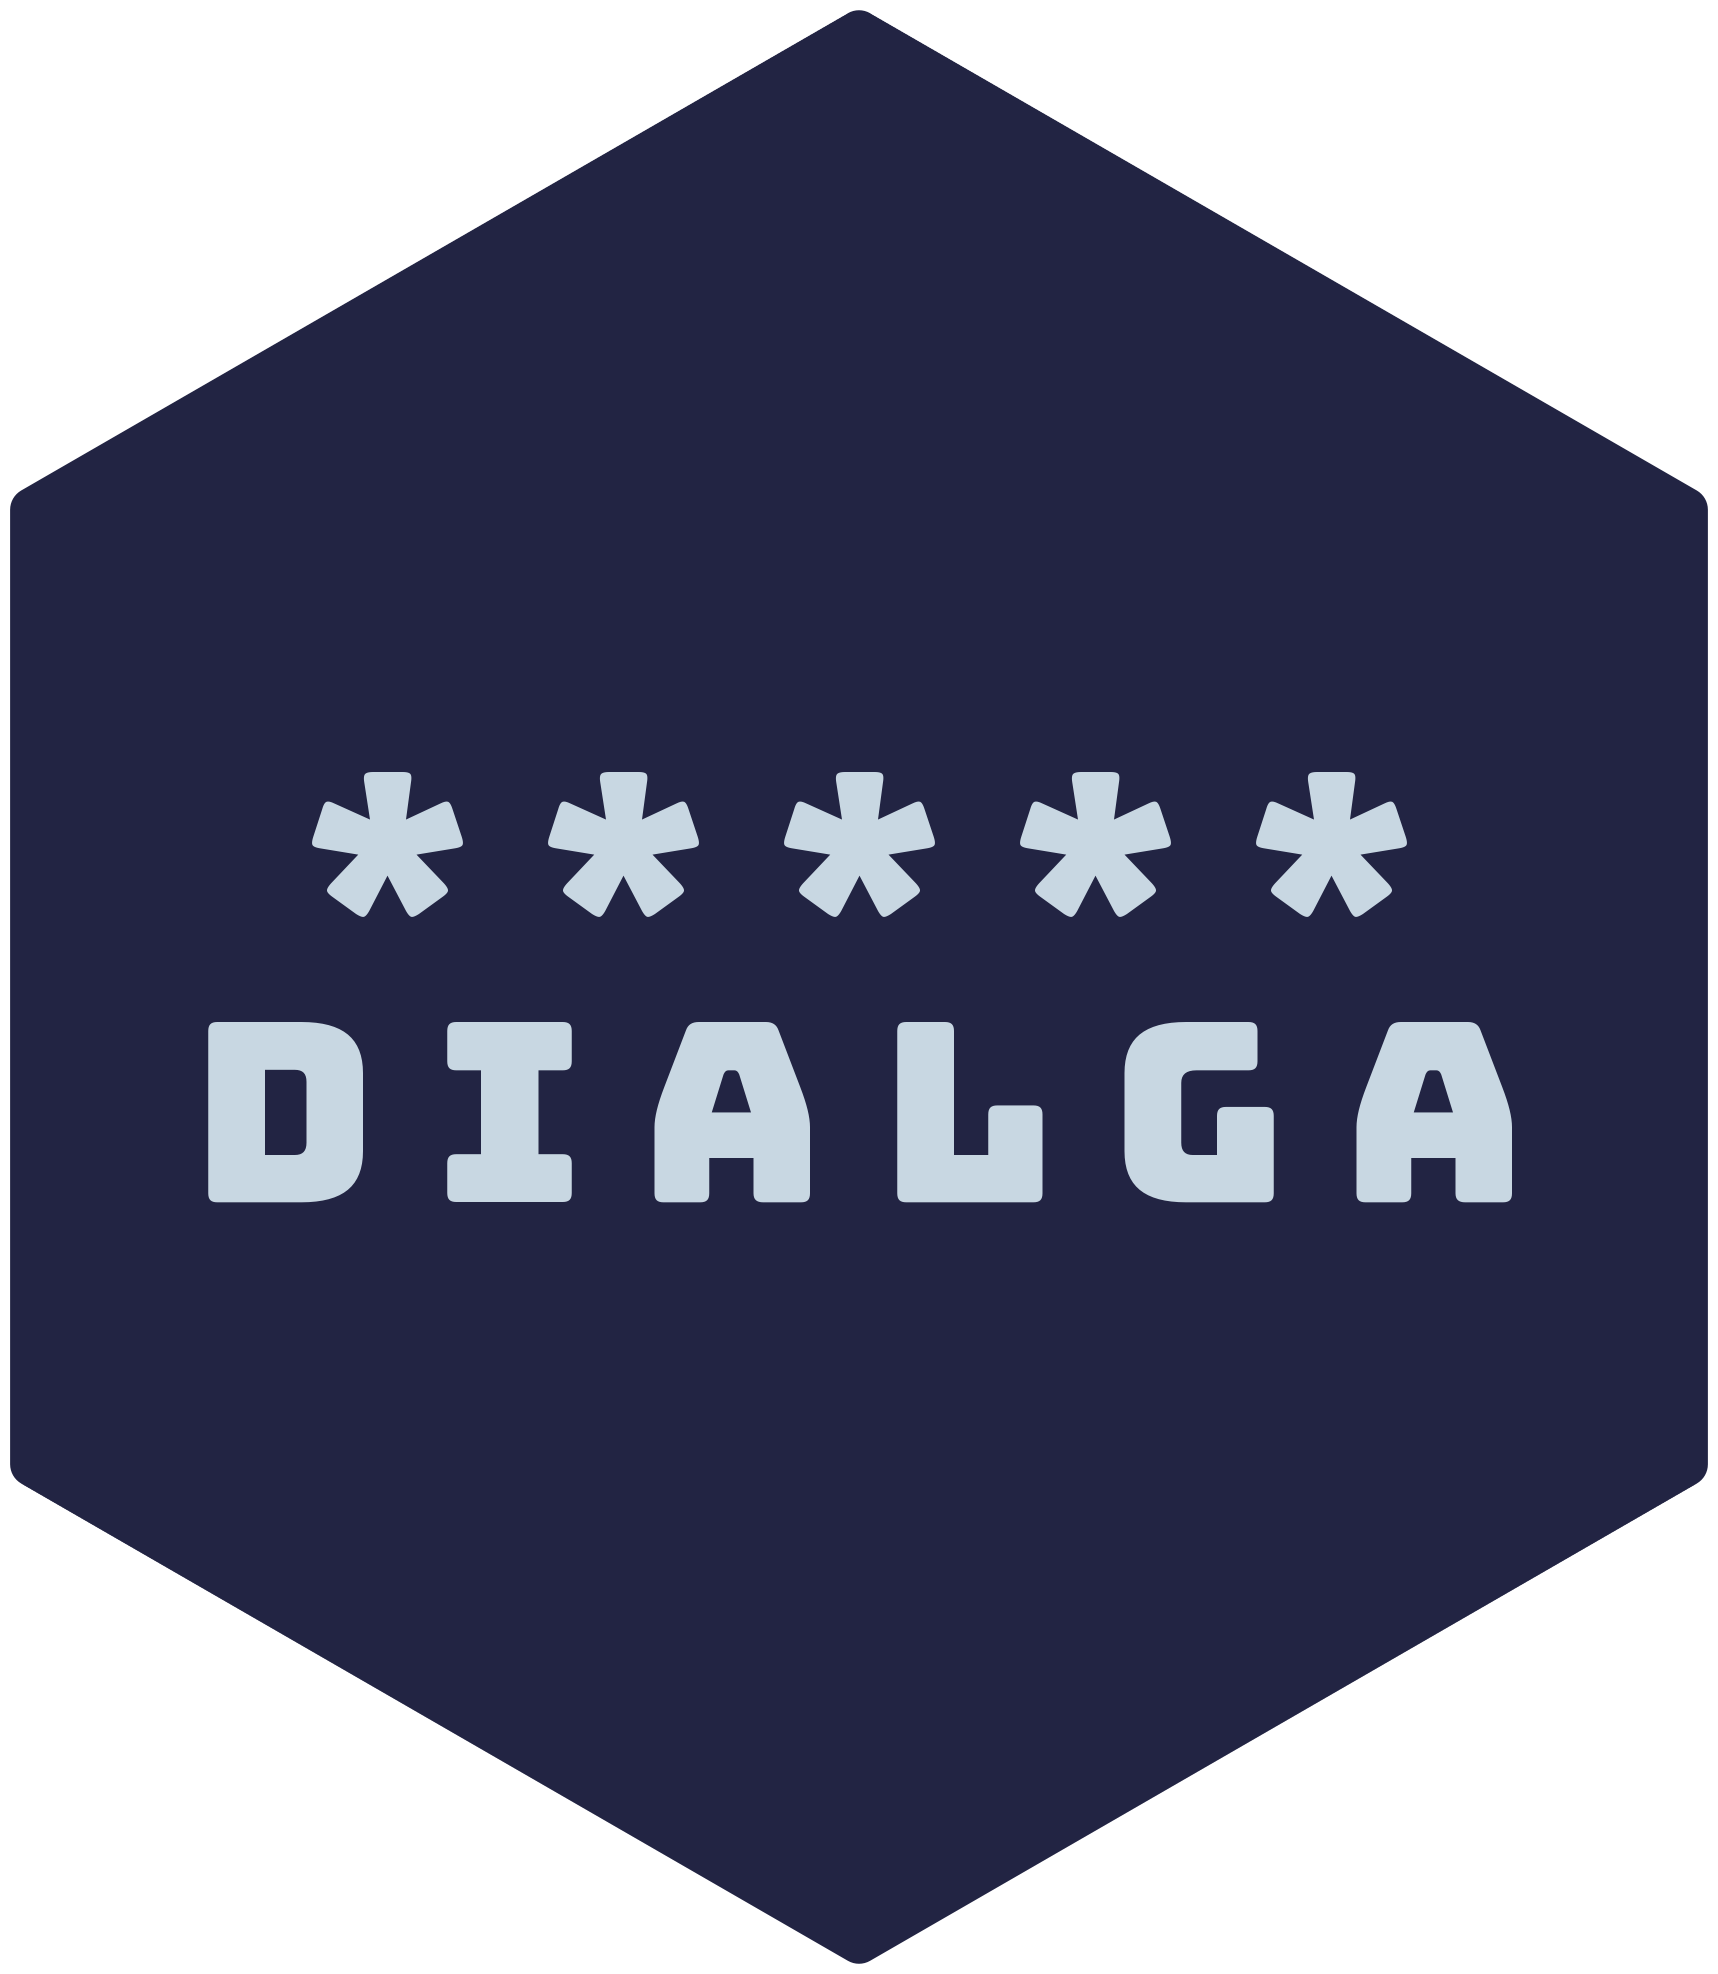 Hexagonal logo for the dialga package showing the package name underneath the five asterisks of a cron string that represents an 'every minute' schedule.